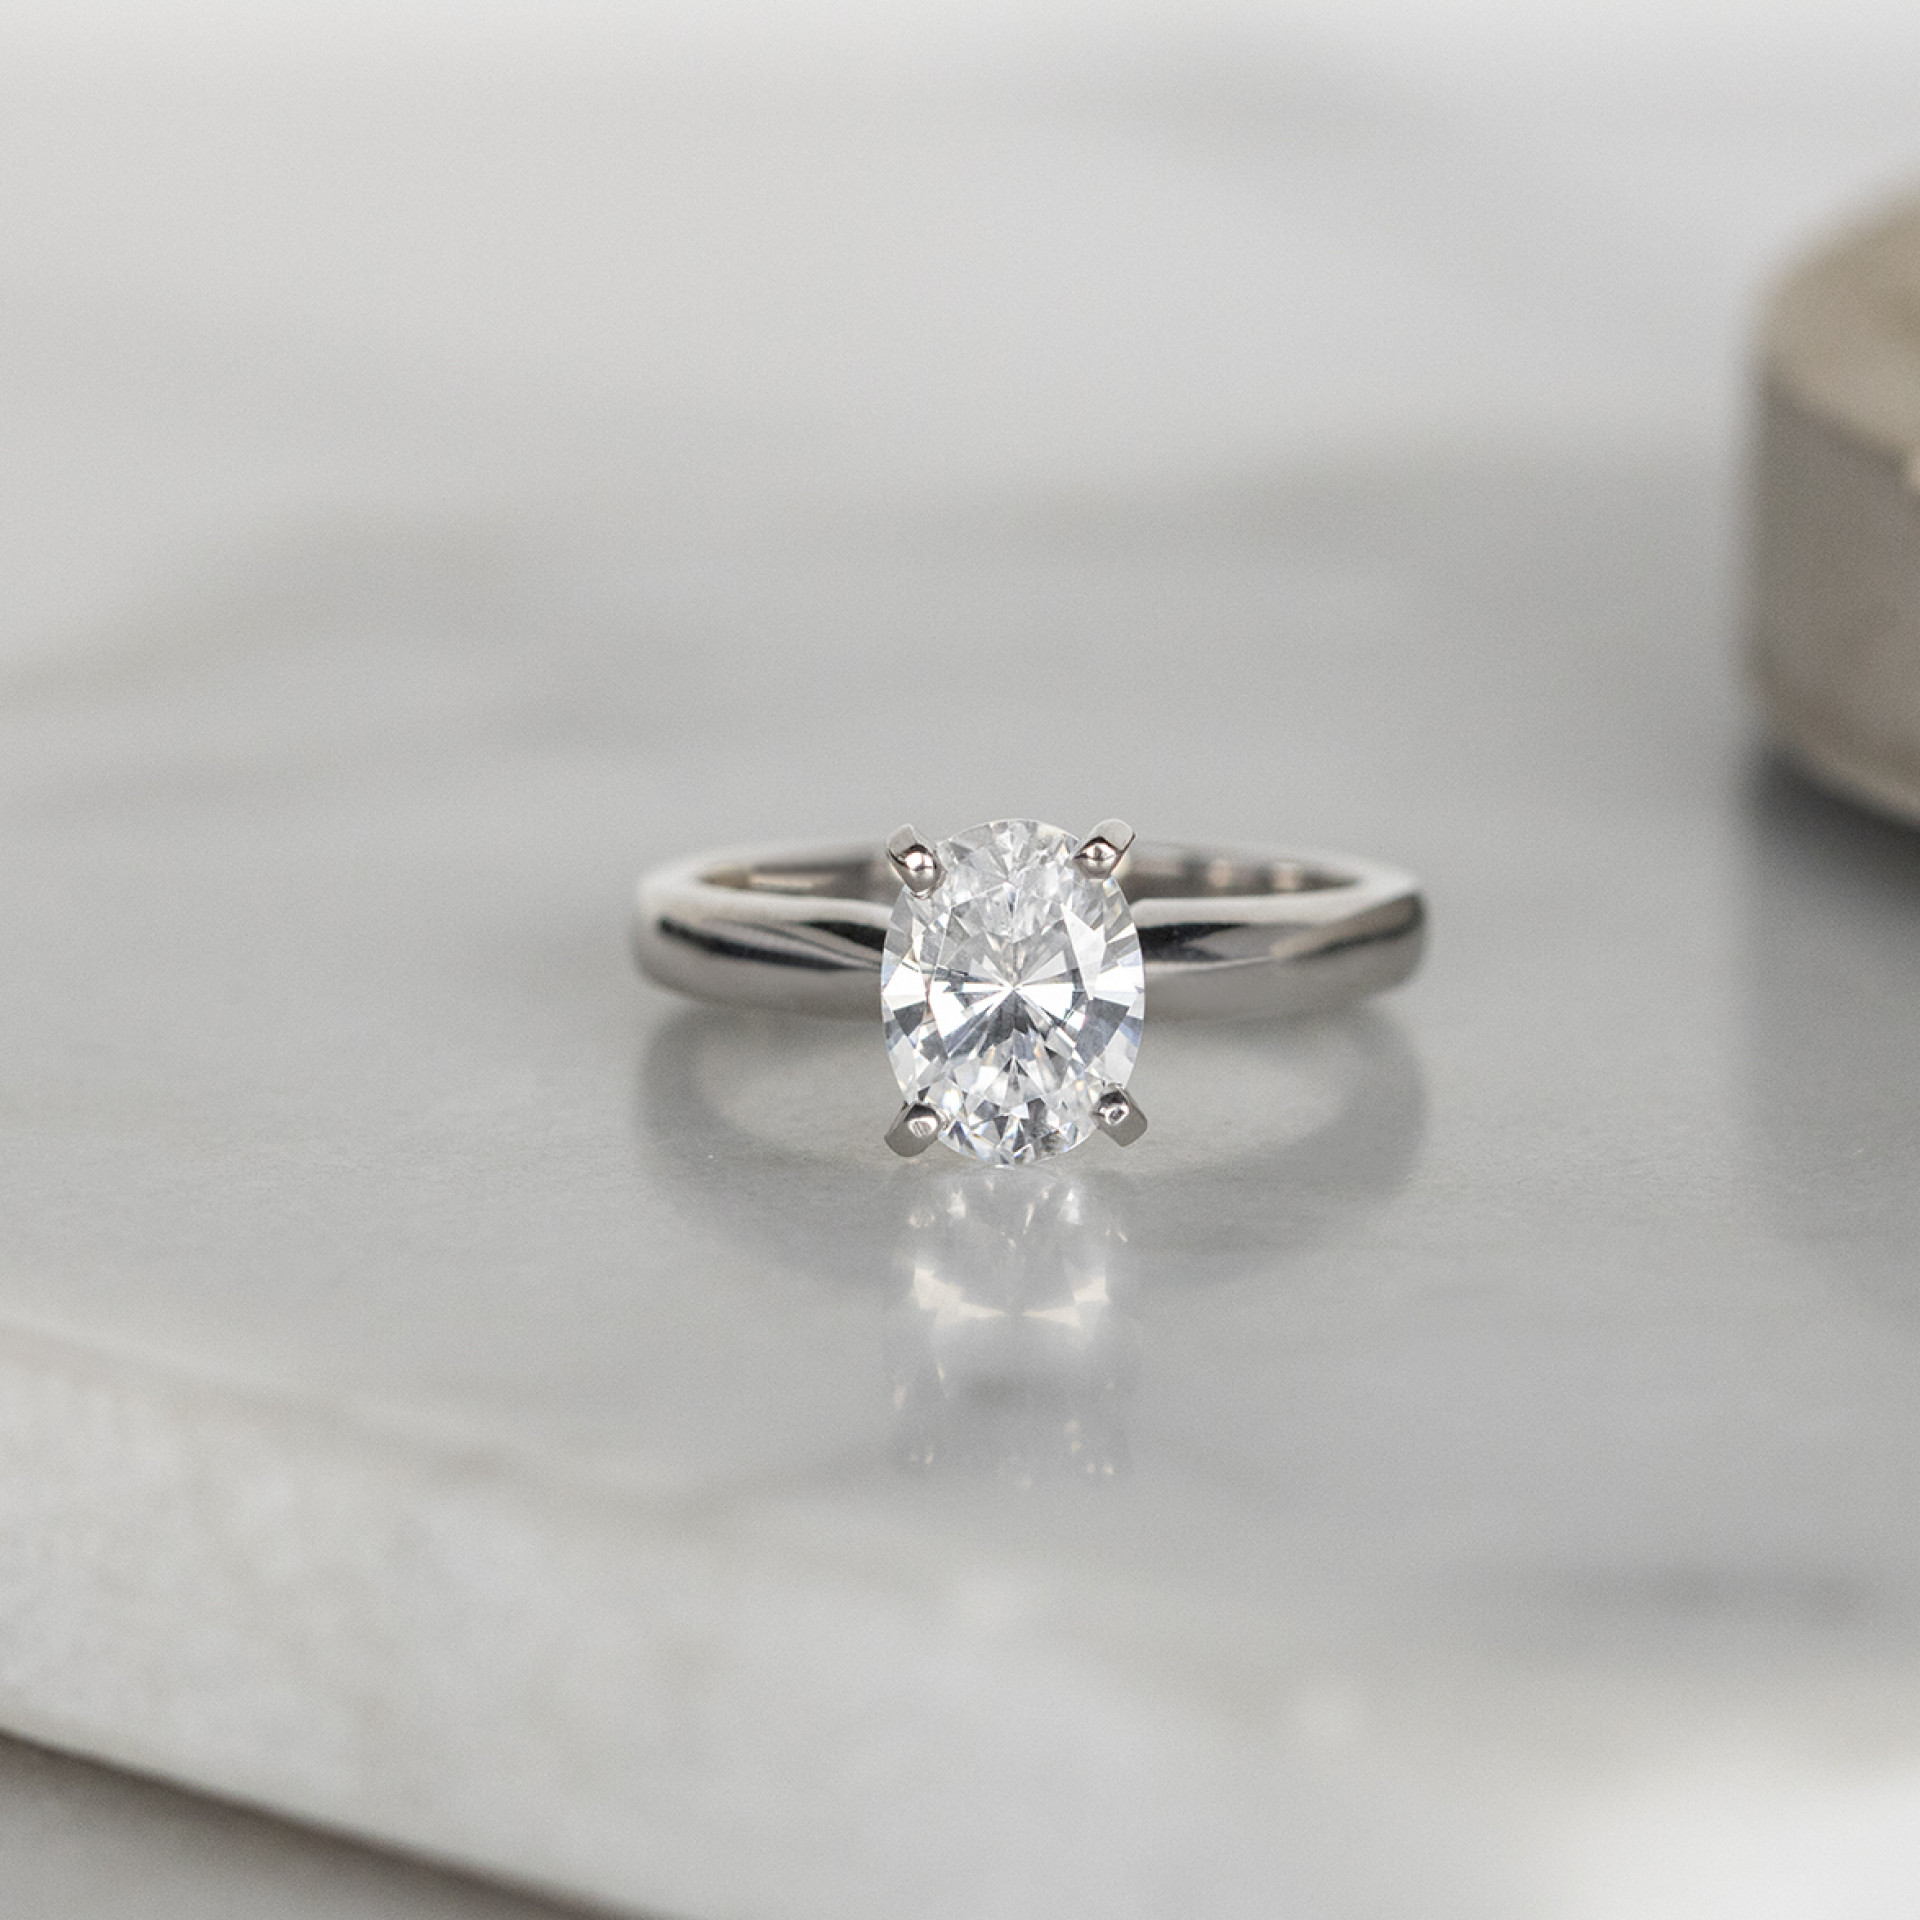 faee01de67157 Tiffany-Style Solitaire Oval Cut Engagement Ring